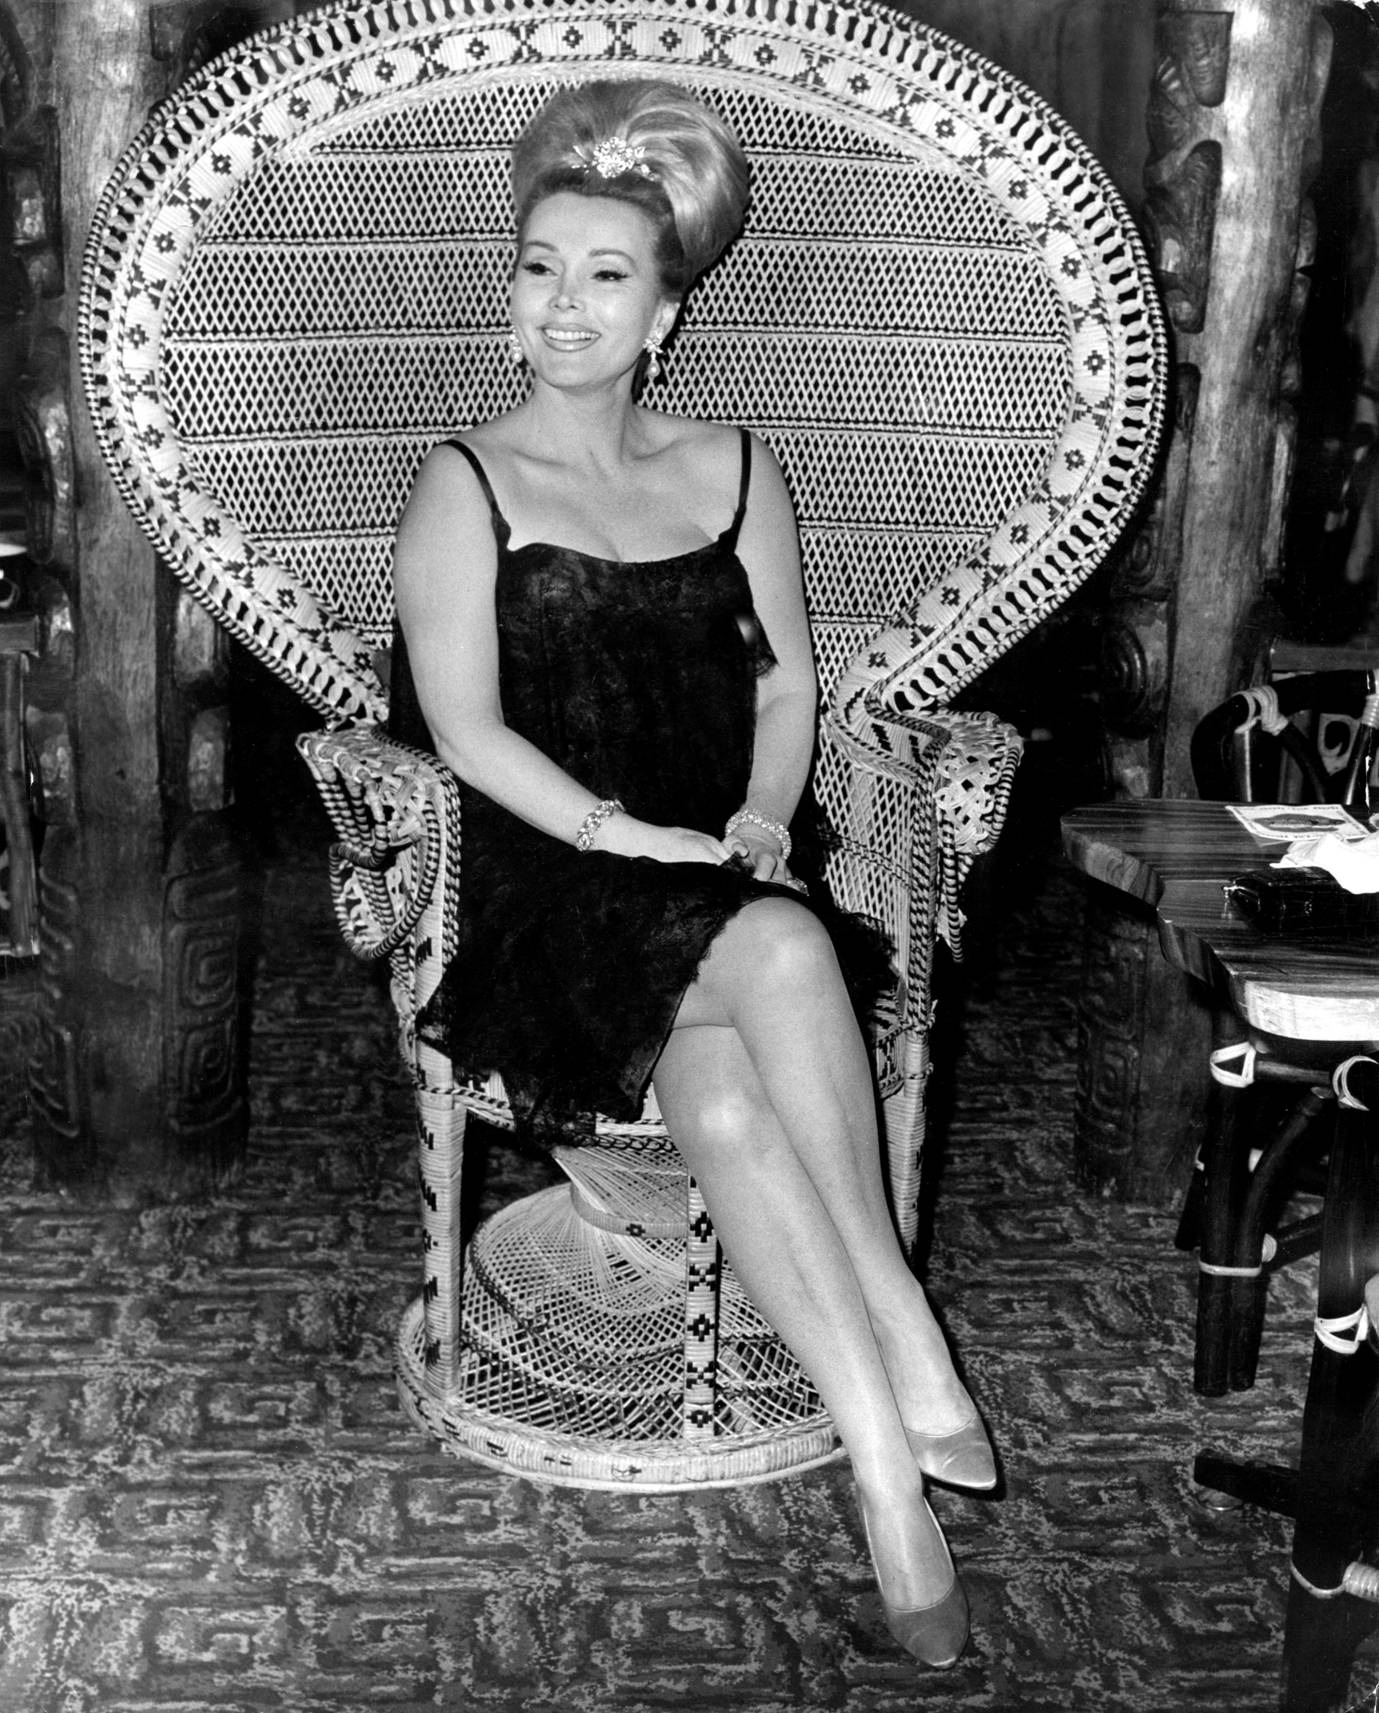 zsa zsa gabor dating Drop dead darling (us title: arrivederci, baby) is a 1966 british comedy crime film directed by ken hughes and starring tony curtis, rosanna schiaffino, lionel jeffries and zsa zsa gabor.